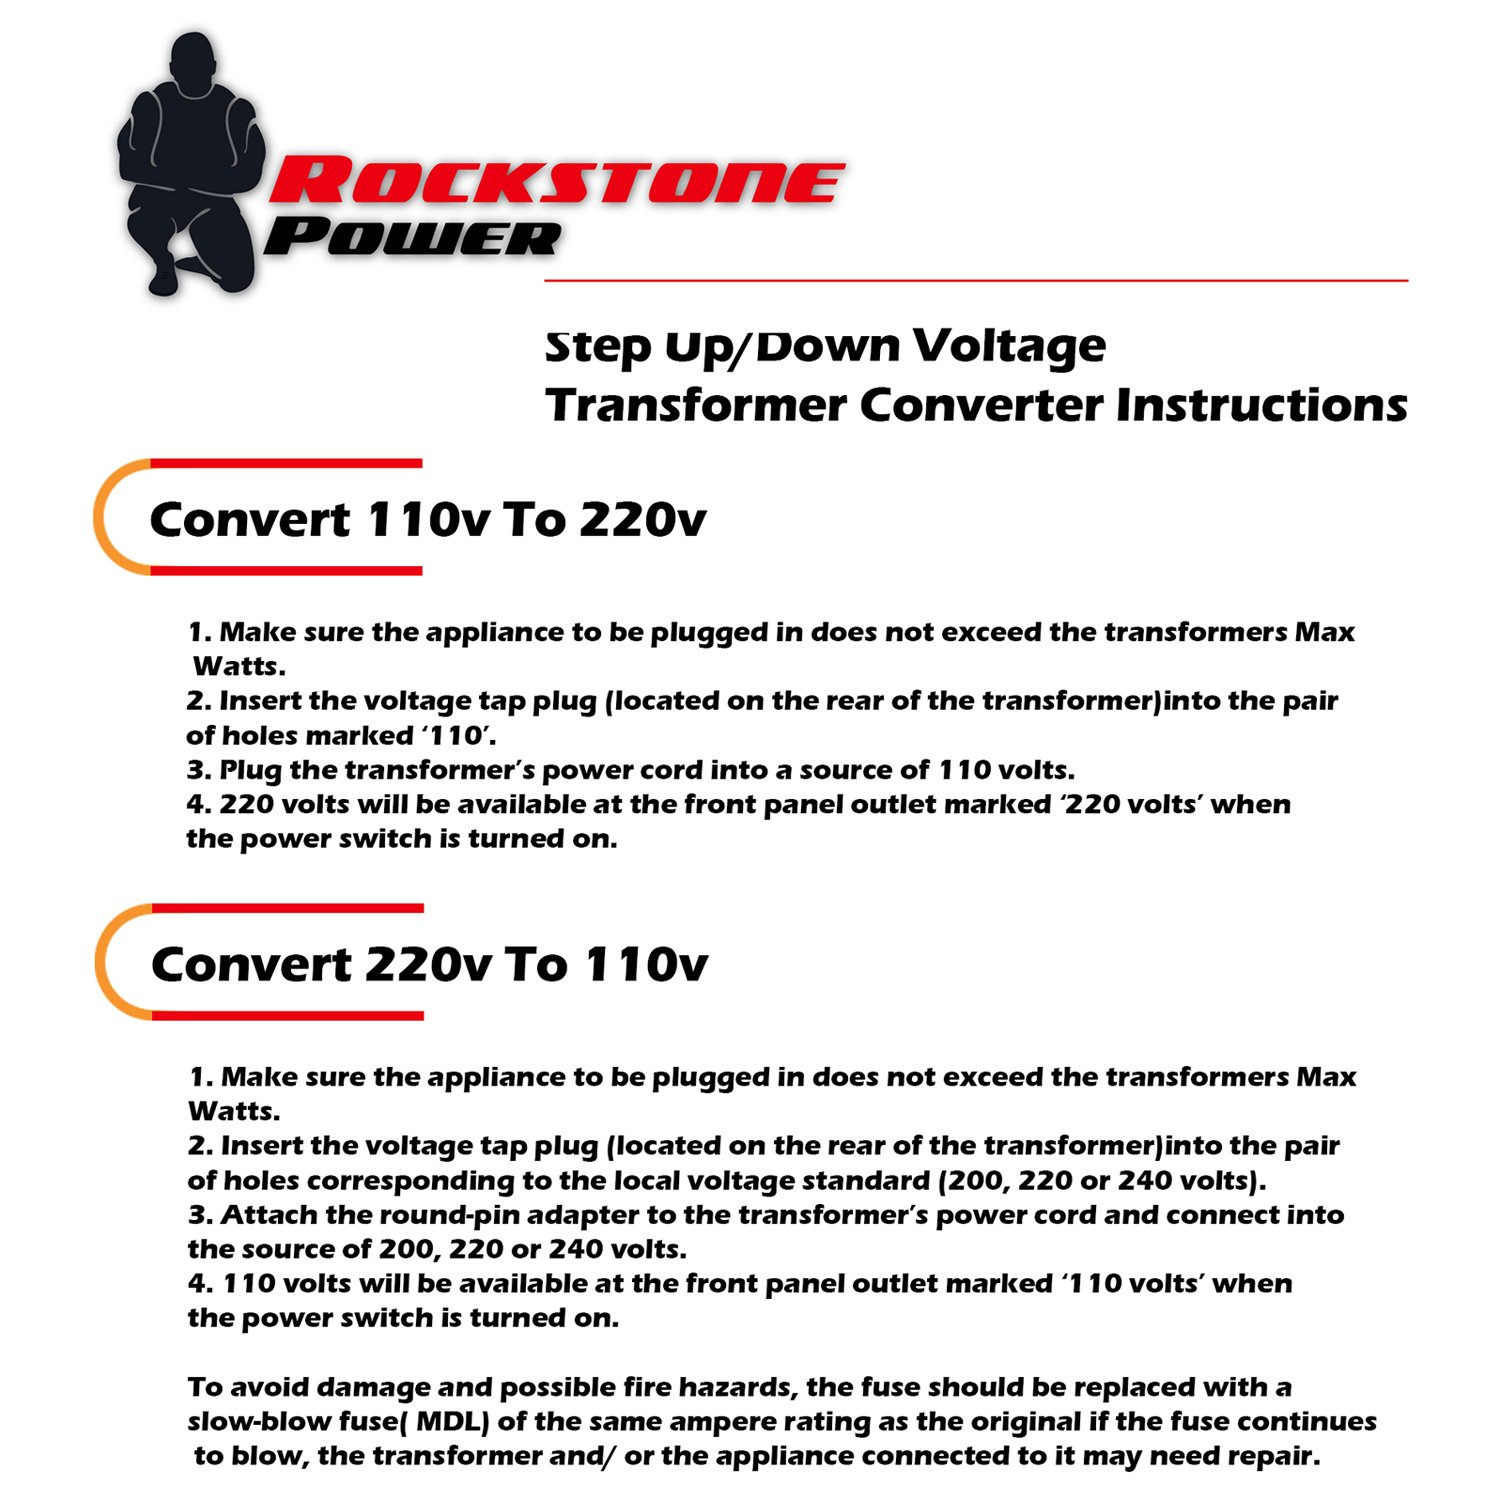 Rockstone Power 1000 Watt Heavy Duty Step Up Down Electrical Wiring In The Home 220 Volt Problem Loud Bang Volts Voltage Transformer Converter 110 120 240 5v Usb Port Ce Certified